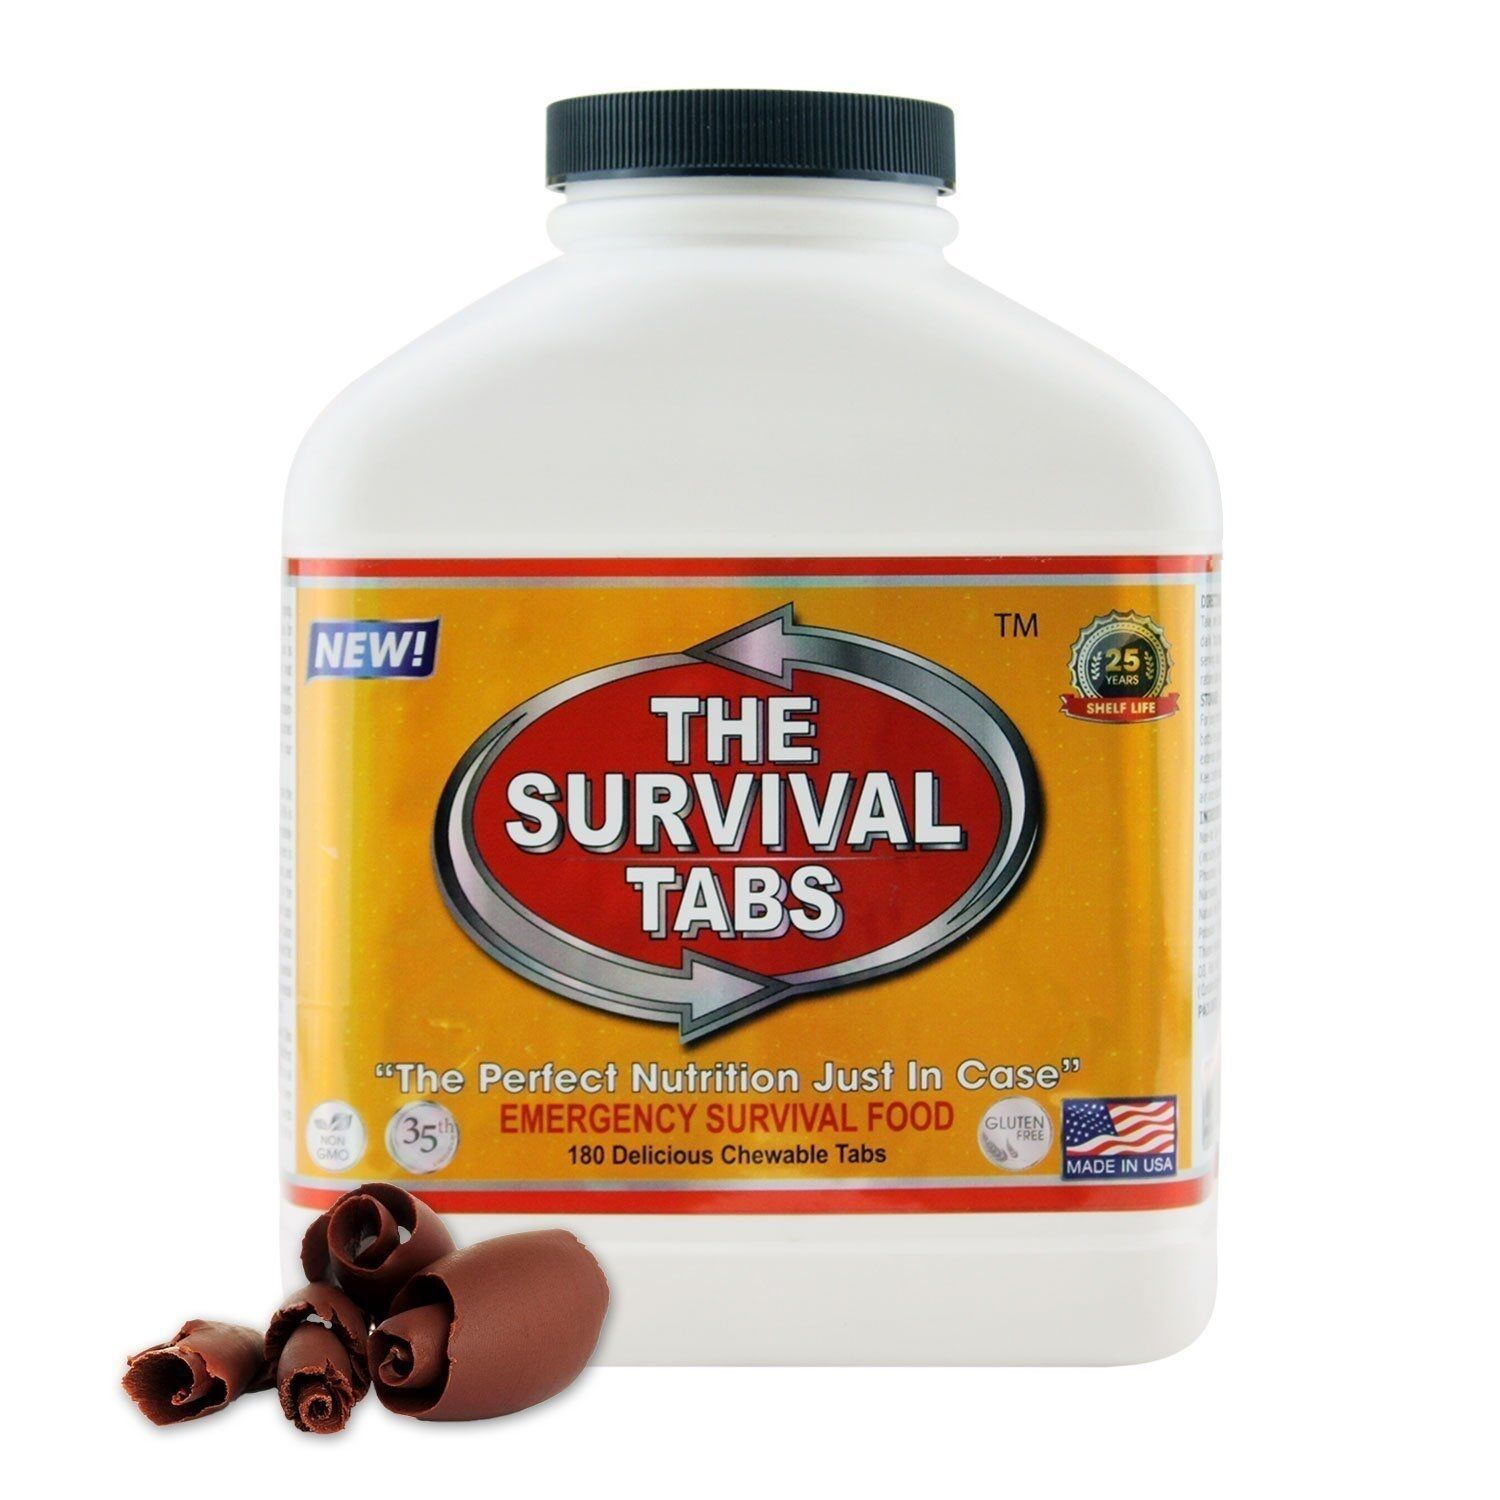 NEW Emergency Food Predein Substitute Survival  Tabs 180 Vital Science Chocolate  cheap wholesale